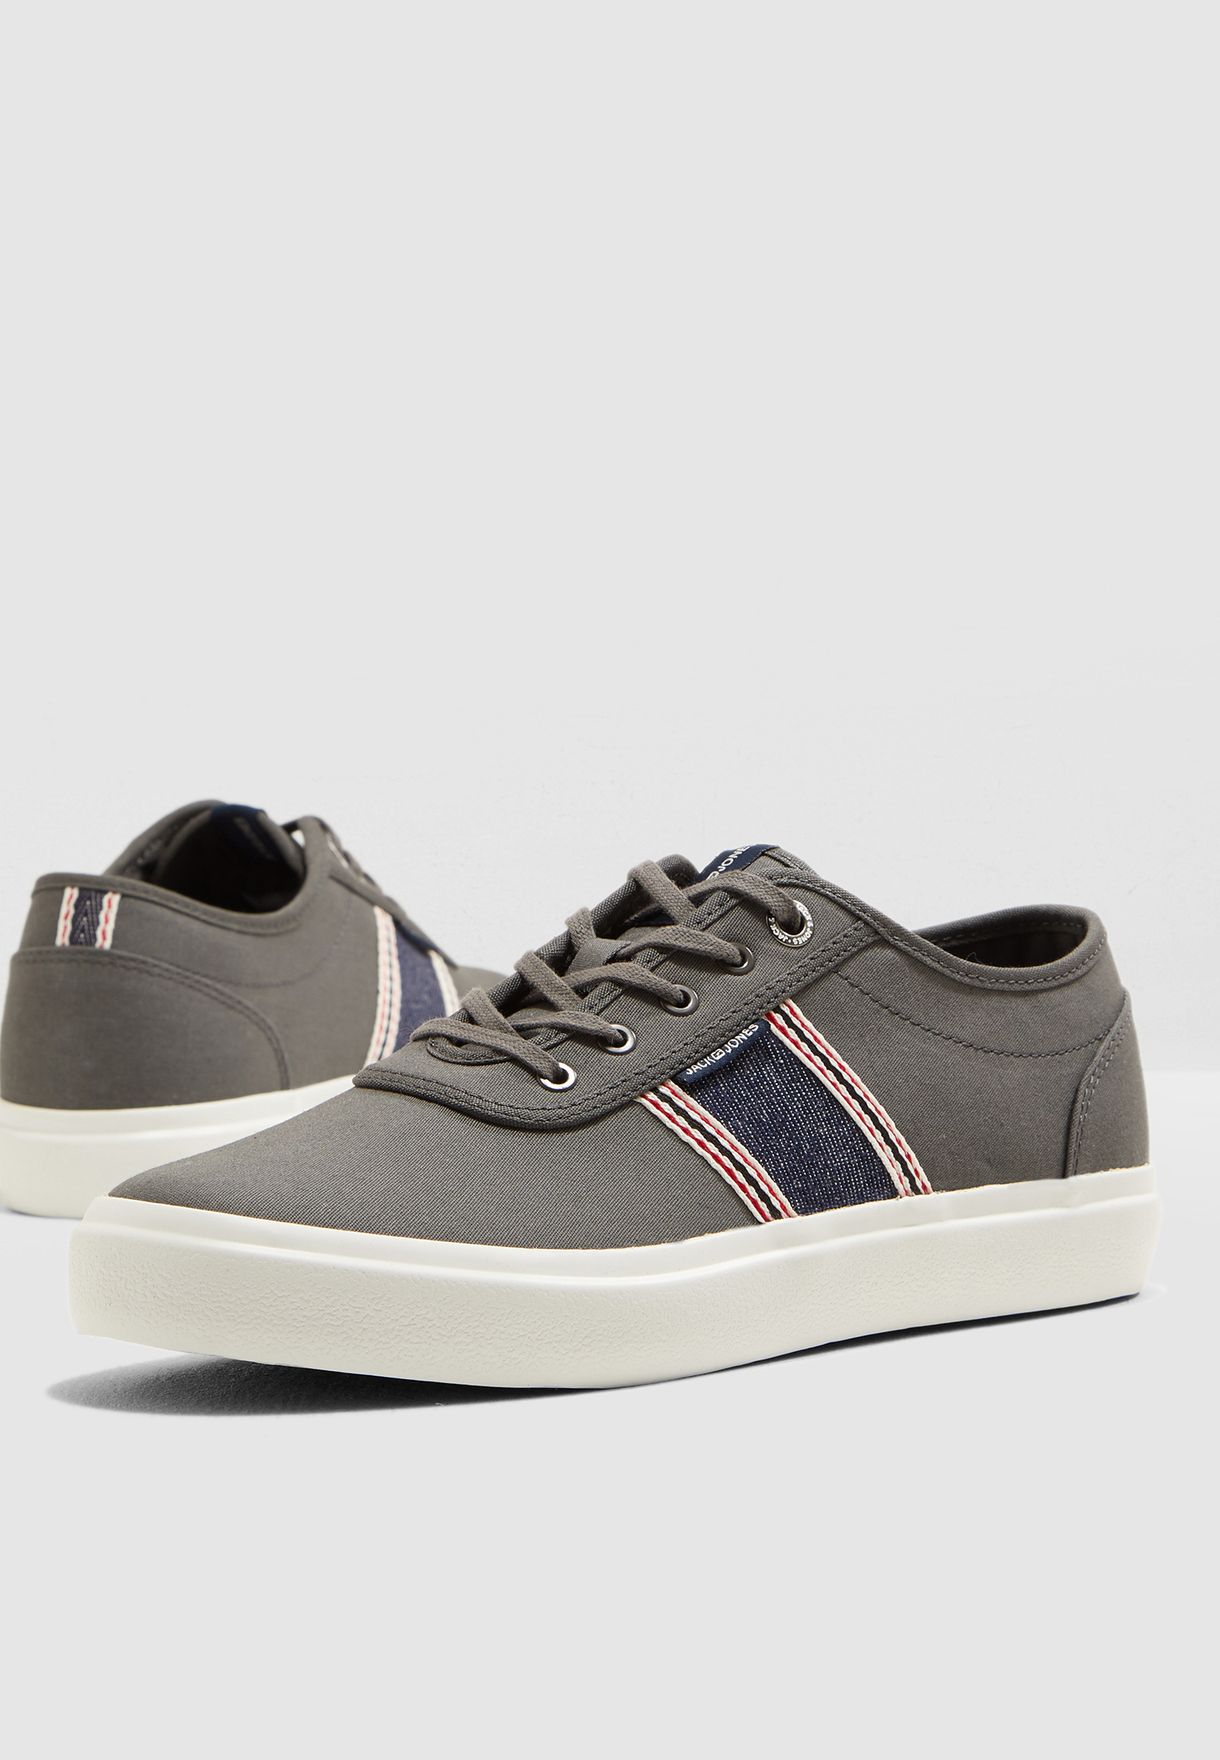 Austin Denim Sneakers